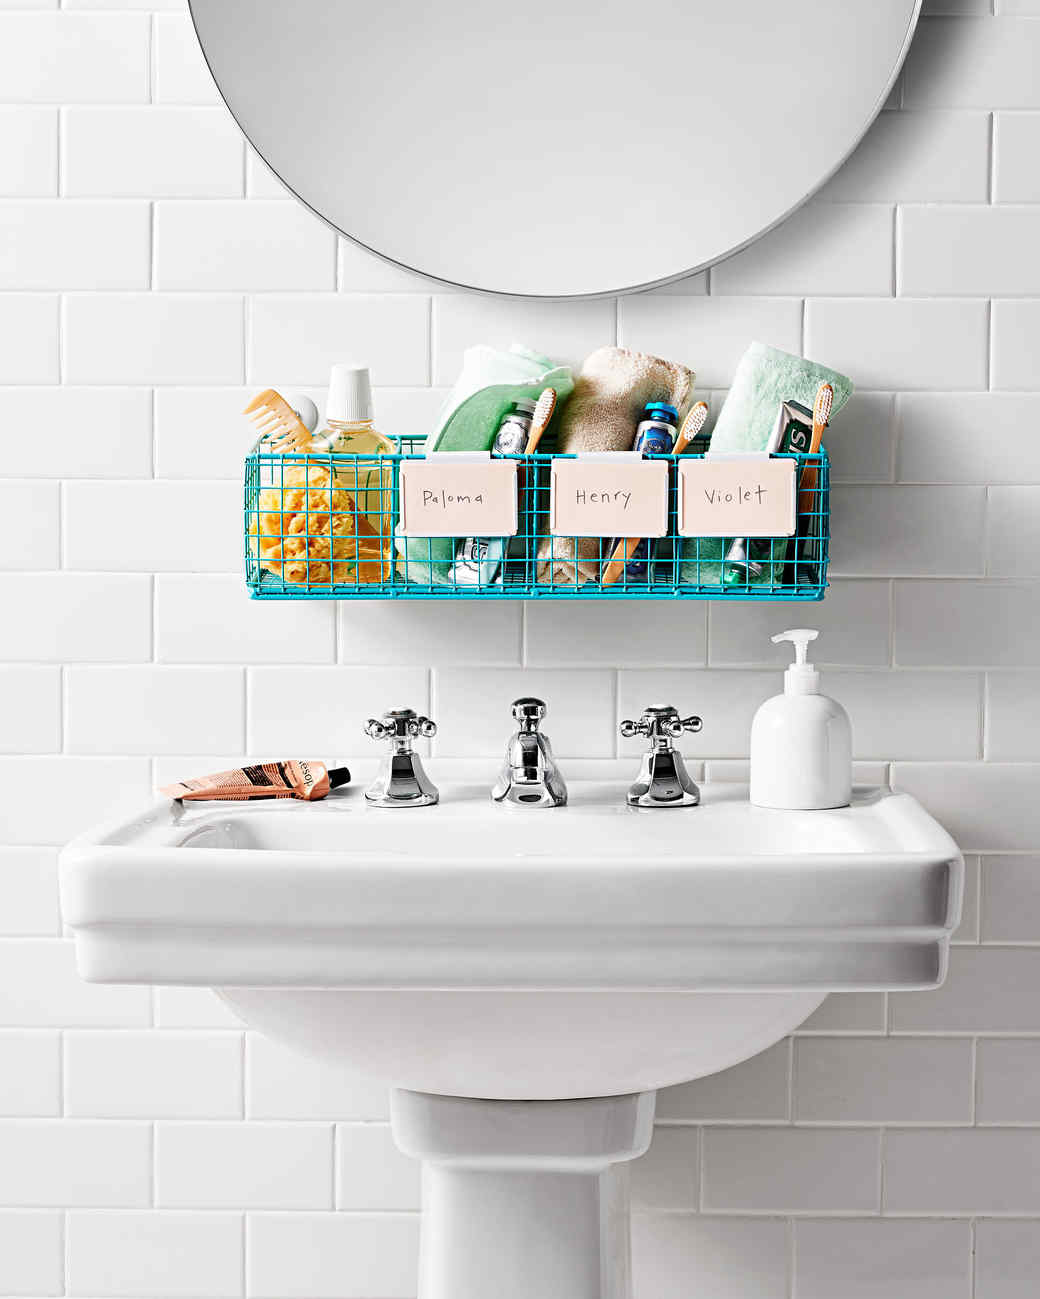 How to decorate a bathroom with plastic panels: recommendations and tips